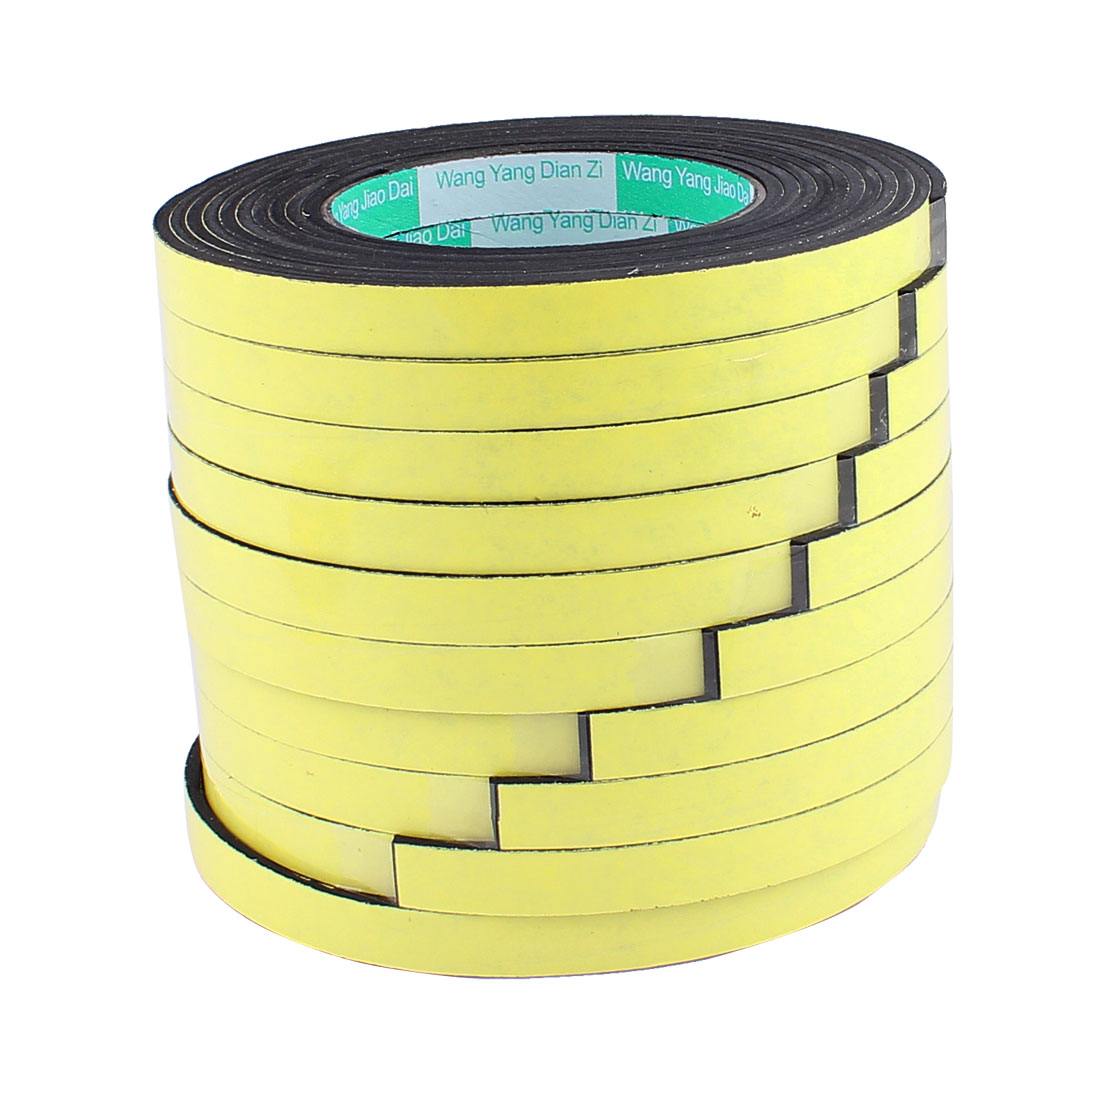 10 Pcs 1.2CM Width 4M Length 3MM Thick Single Sided Sealing Shockproof Sponge Tape